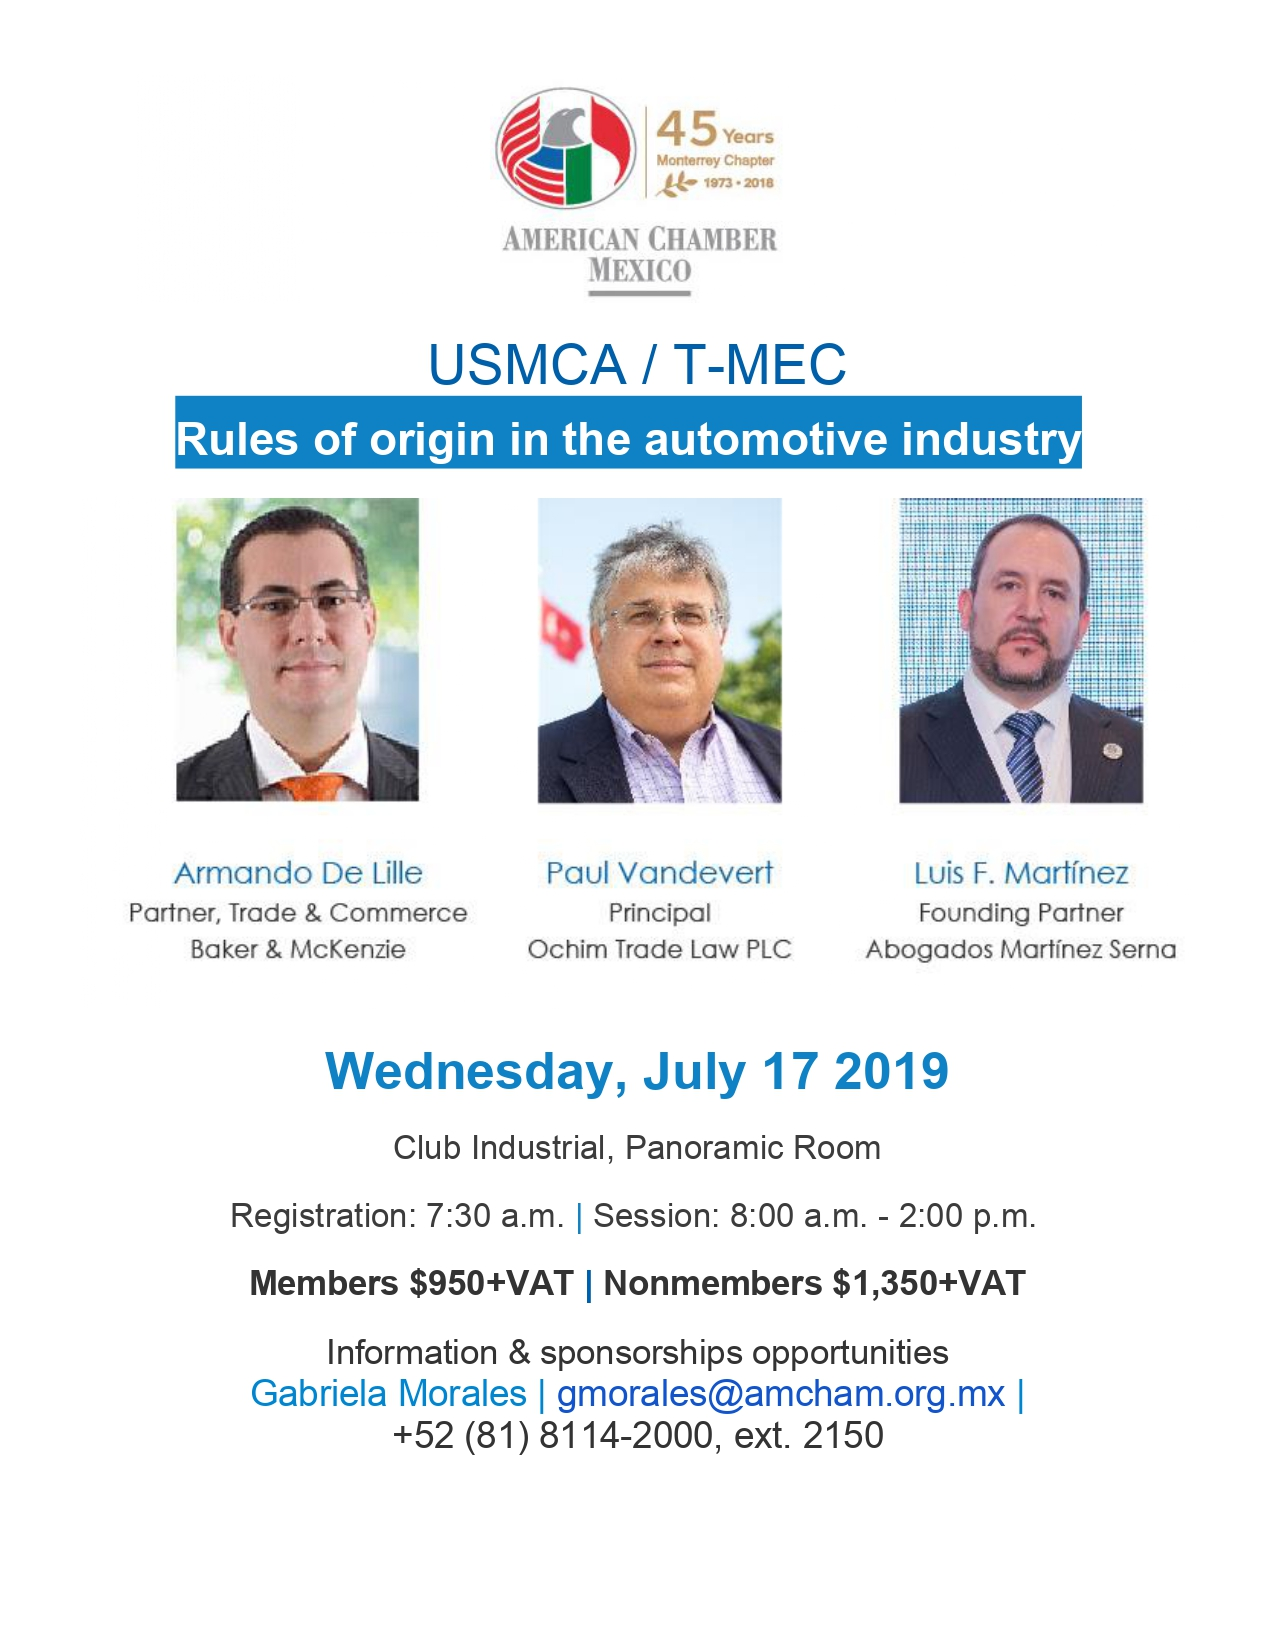 MTY - USMCA / T-MEC_Rules of origin in the automotive industry